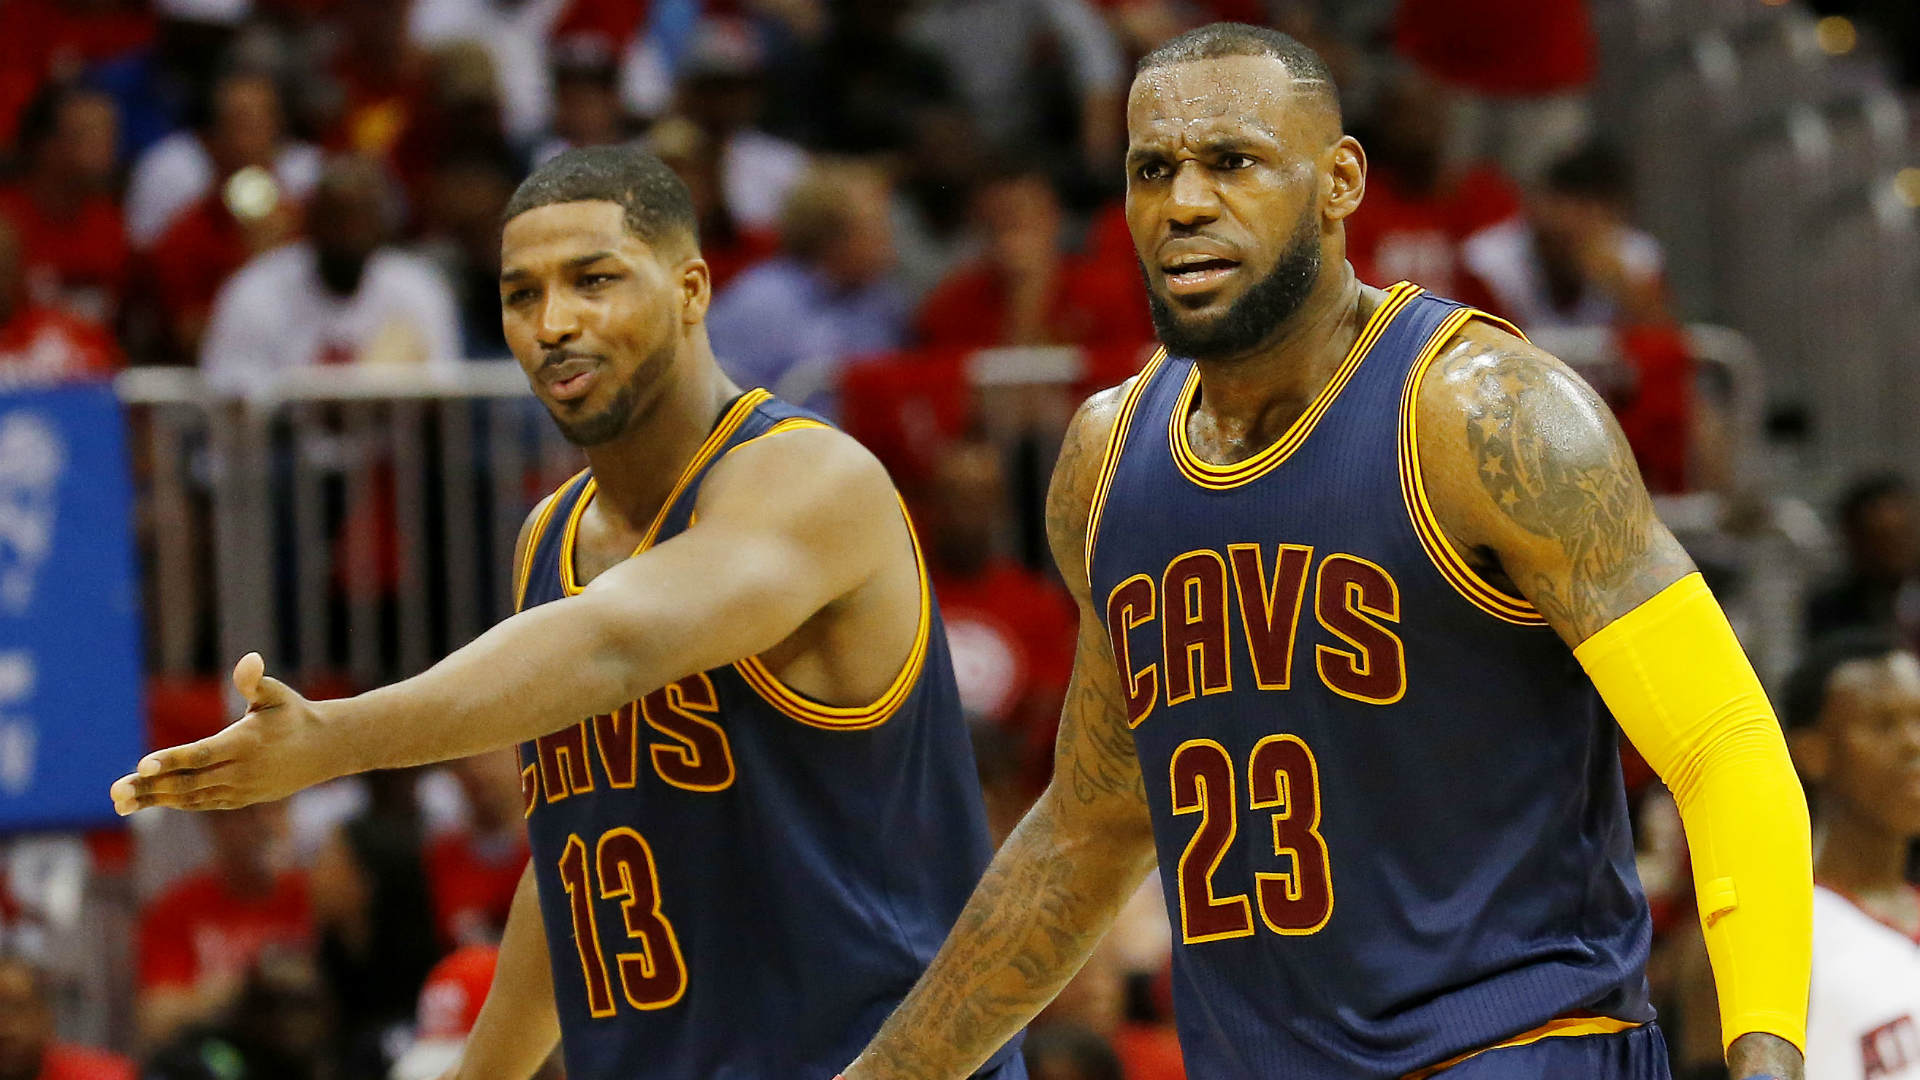 LeBron says Tristan Thompson should be a career Cavalier